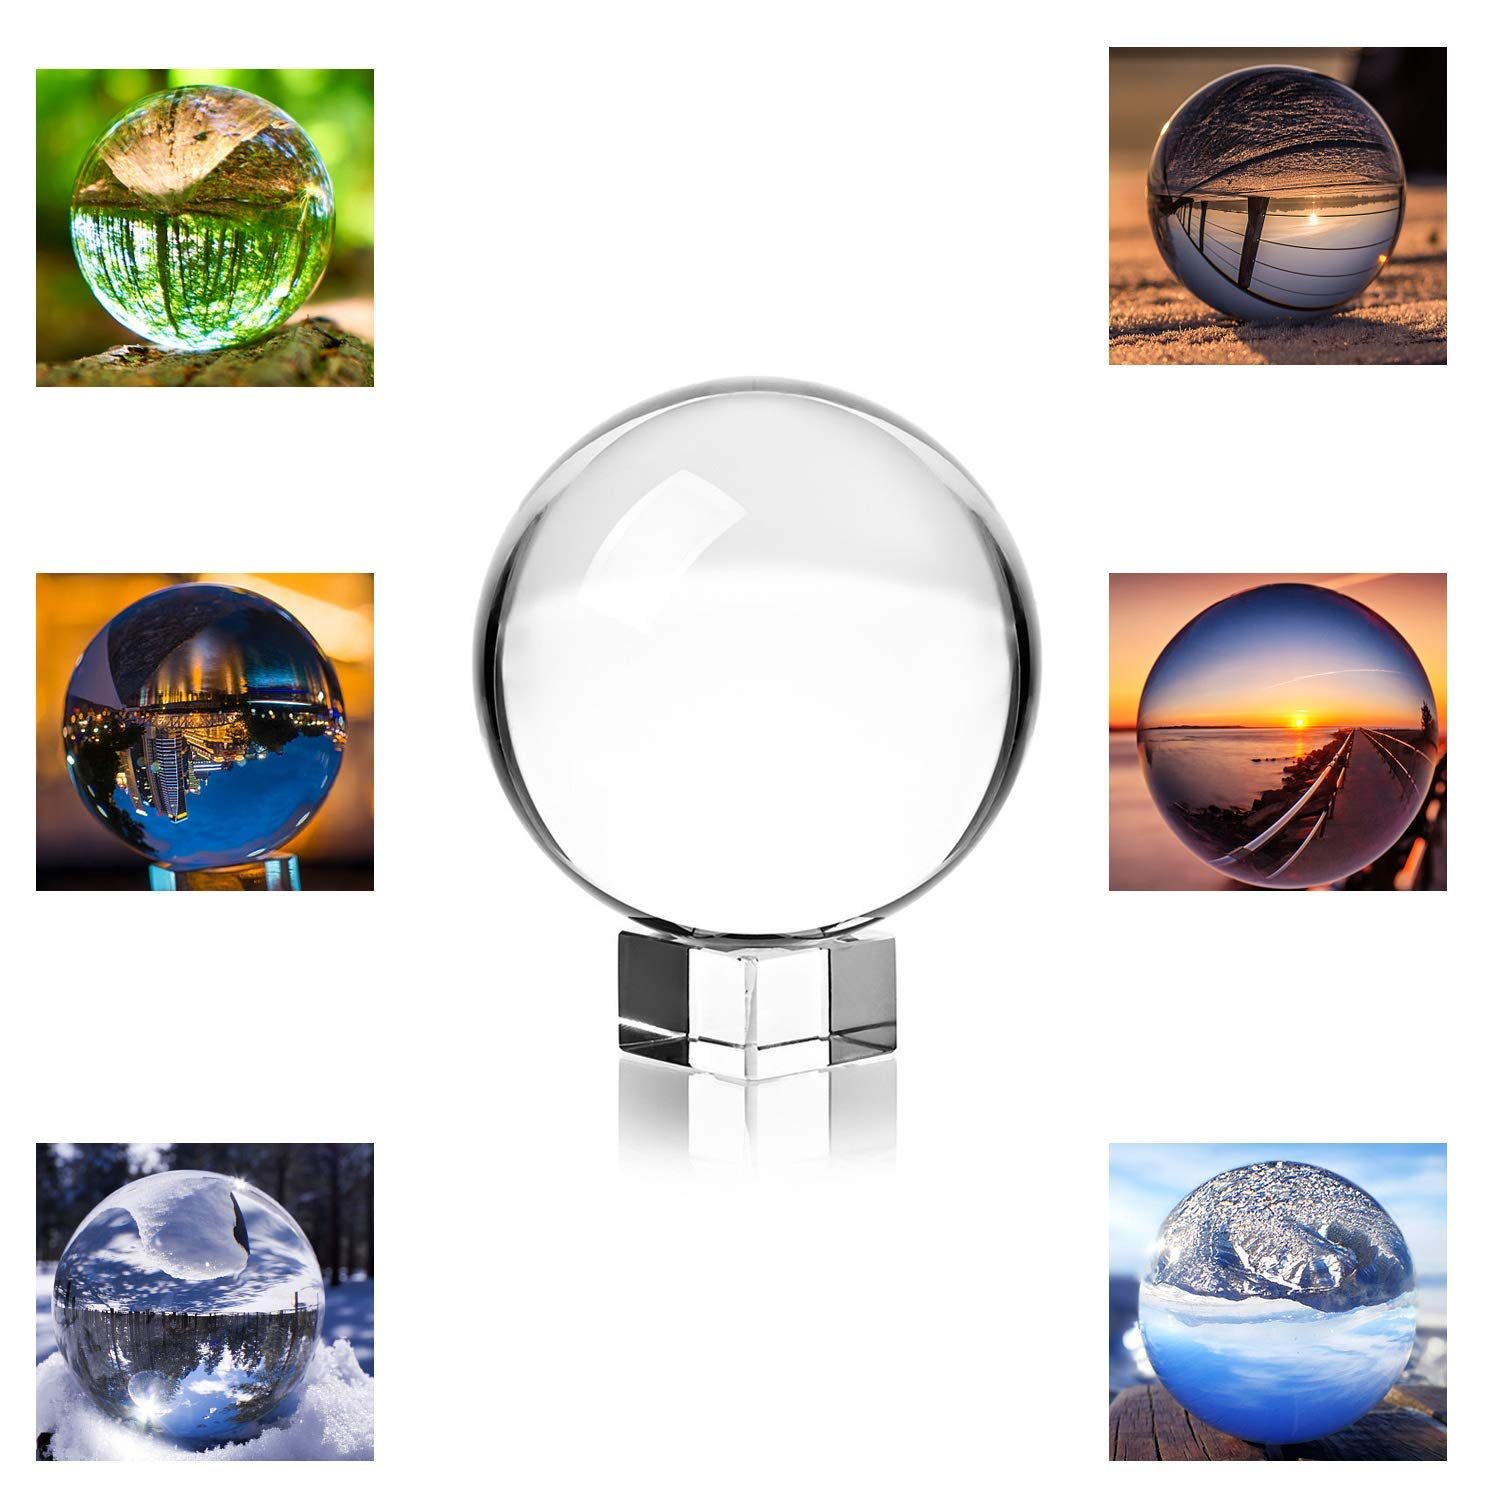 """MerryNine Crystal Ball Clear Crystal Ball with Stand and Pouch, 3-1/5"""" /80mm Art Decor K9 Crystal Prop for Photography Decoration (3-1/5"""" Dia, K9 Clear)"""